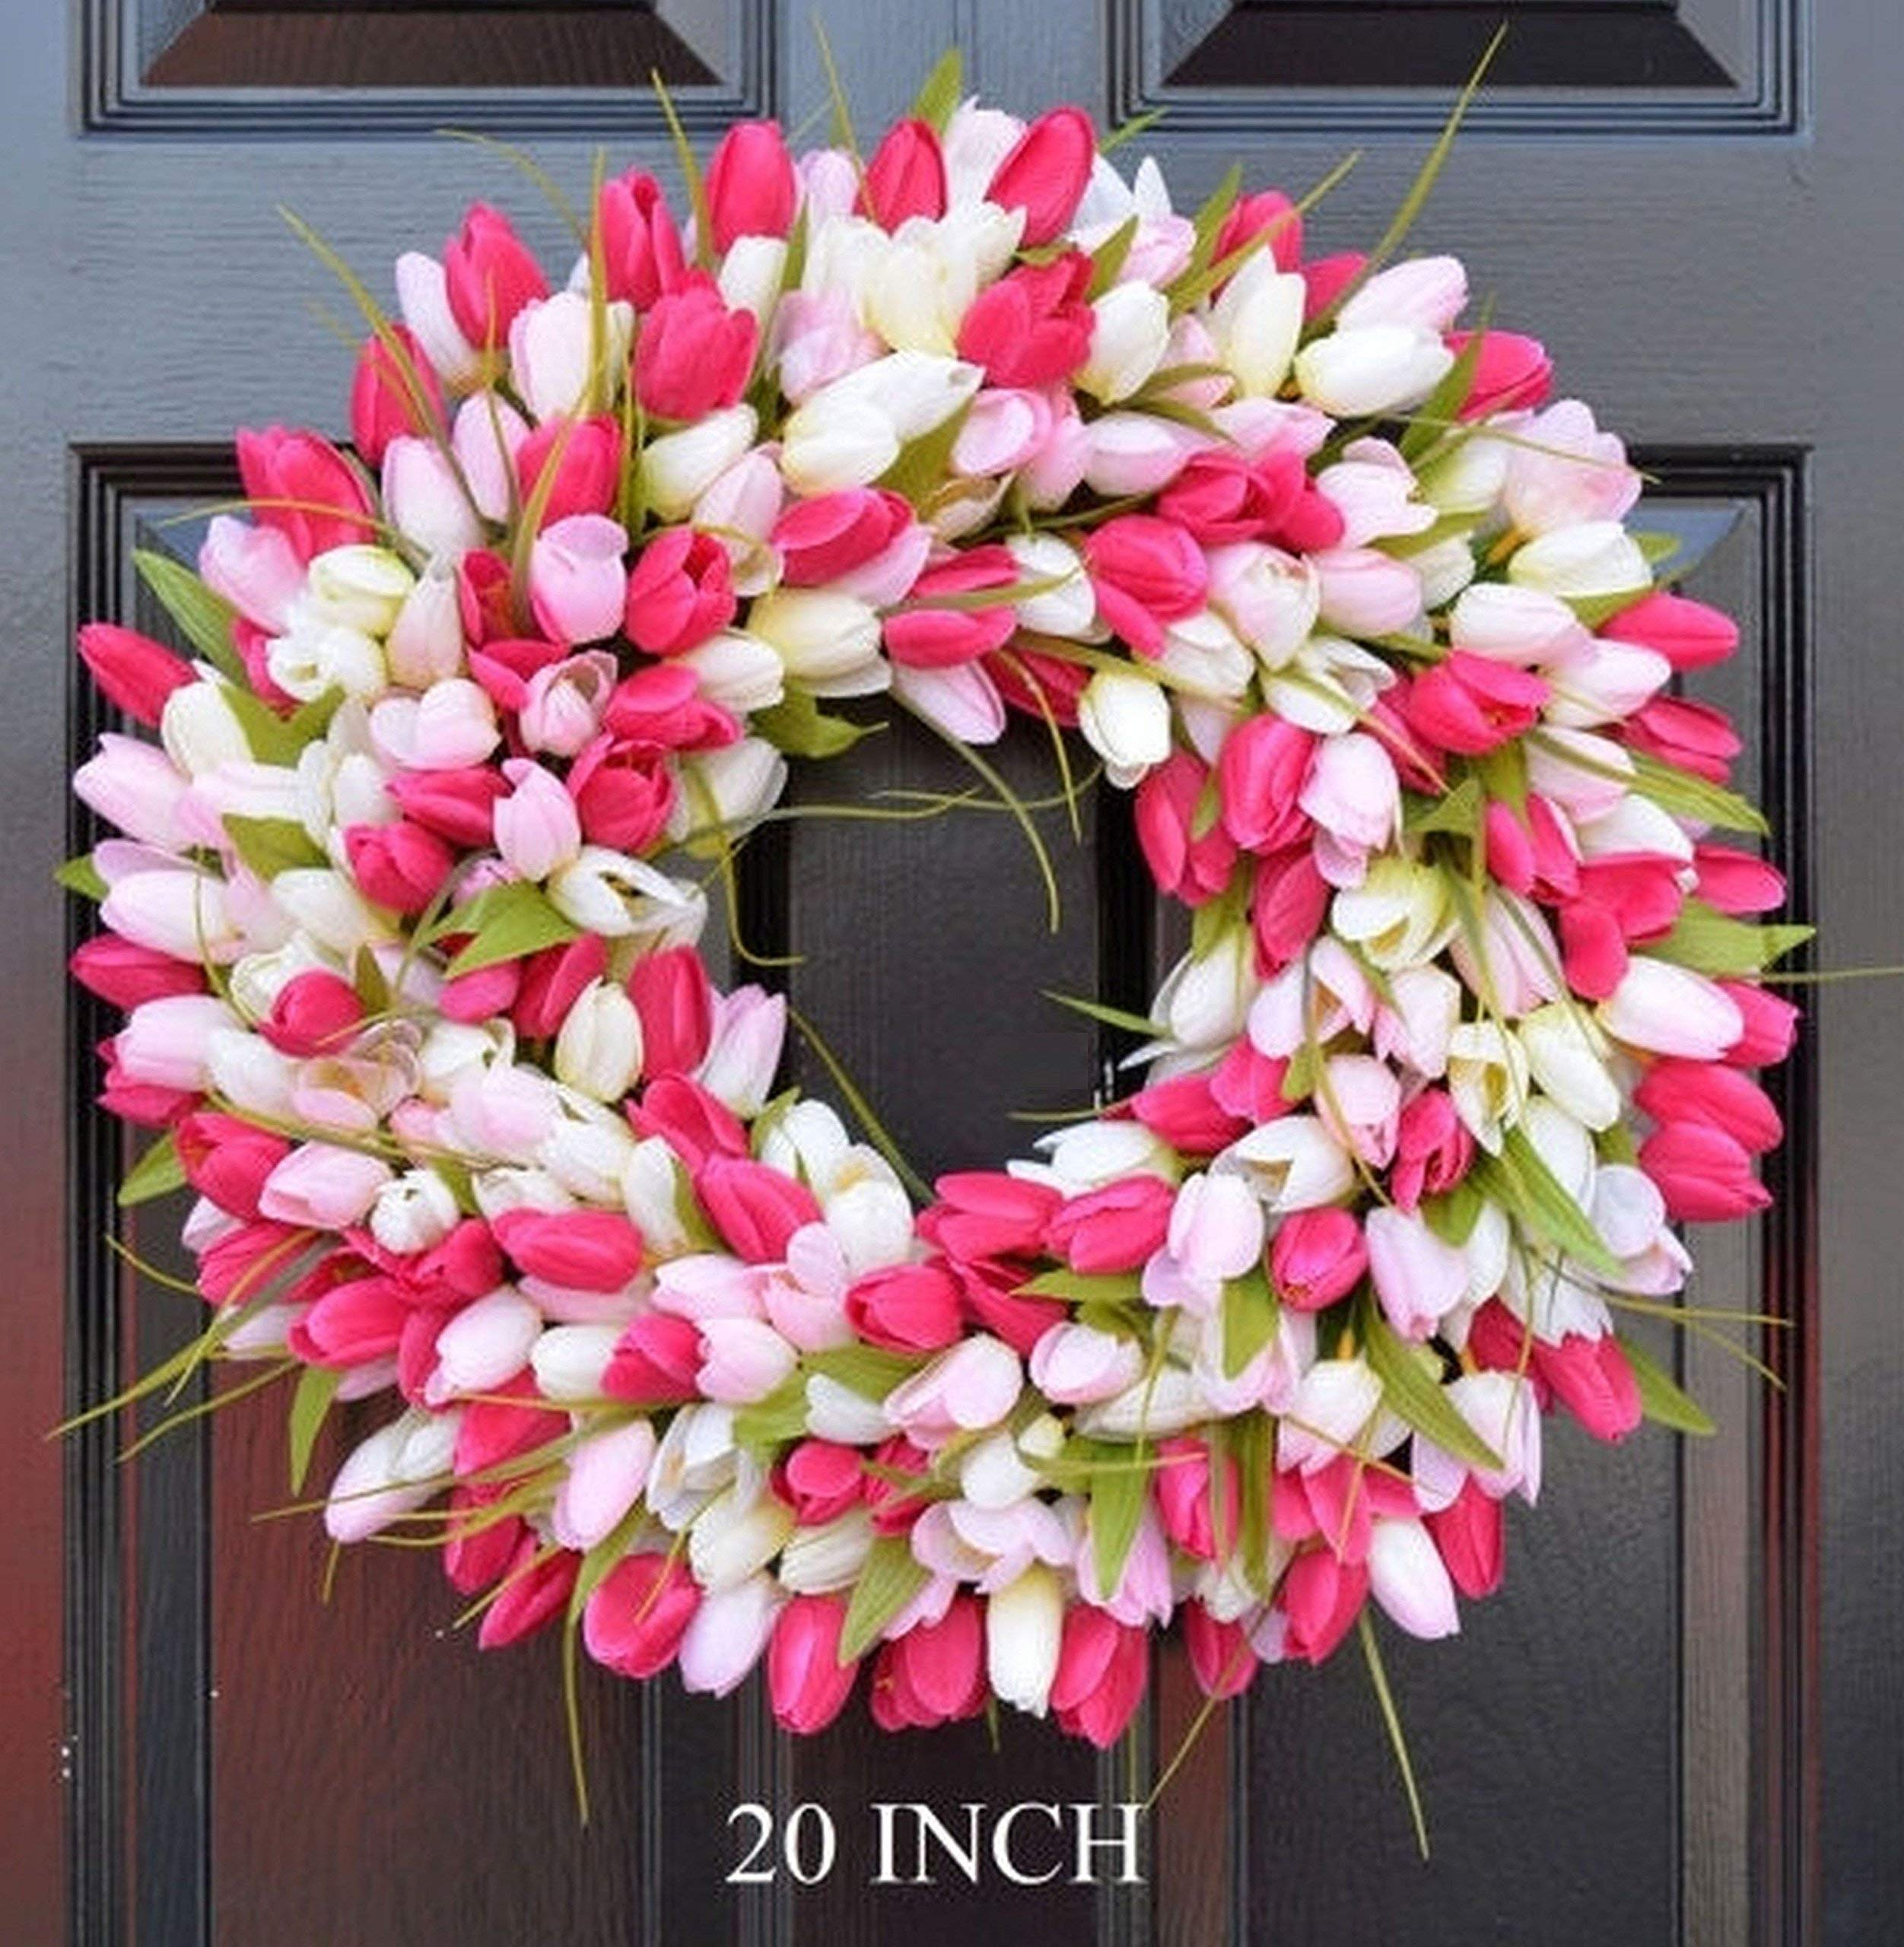 silk flower arrangements elegant holidays handmade pink/white silk tulip wreath- decorative home décor for indoor/outdoor- welcome guests in spring, summer with front door wreaths- great easter holiday accent- 16-26 inches